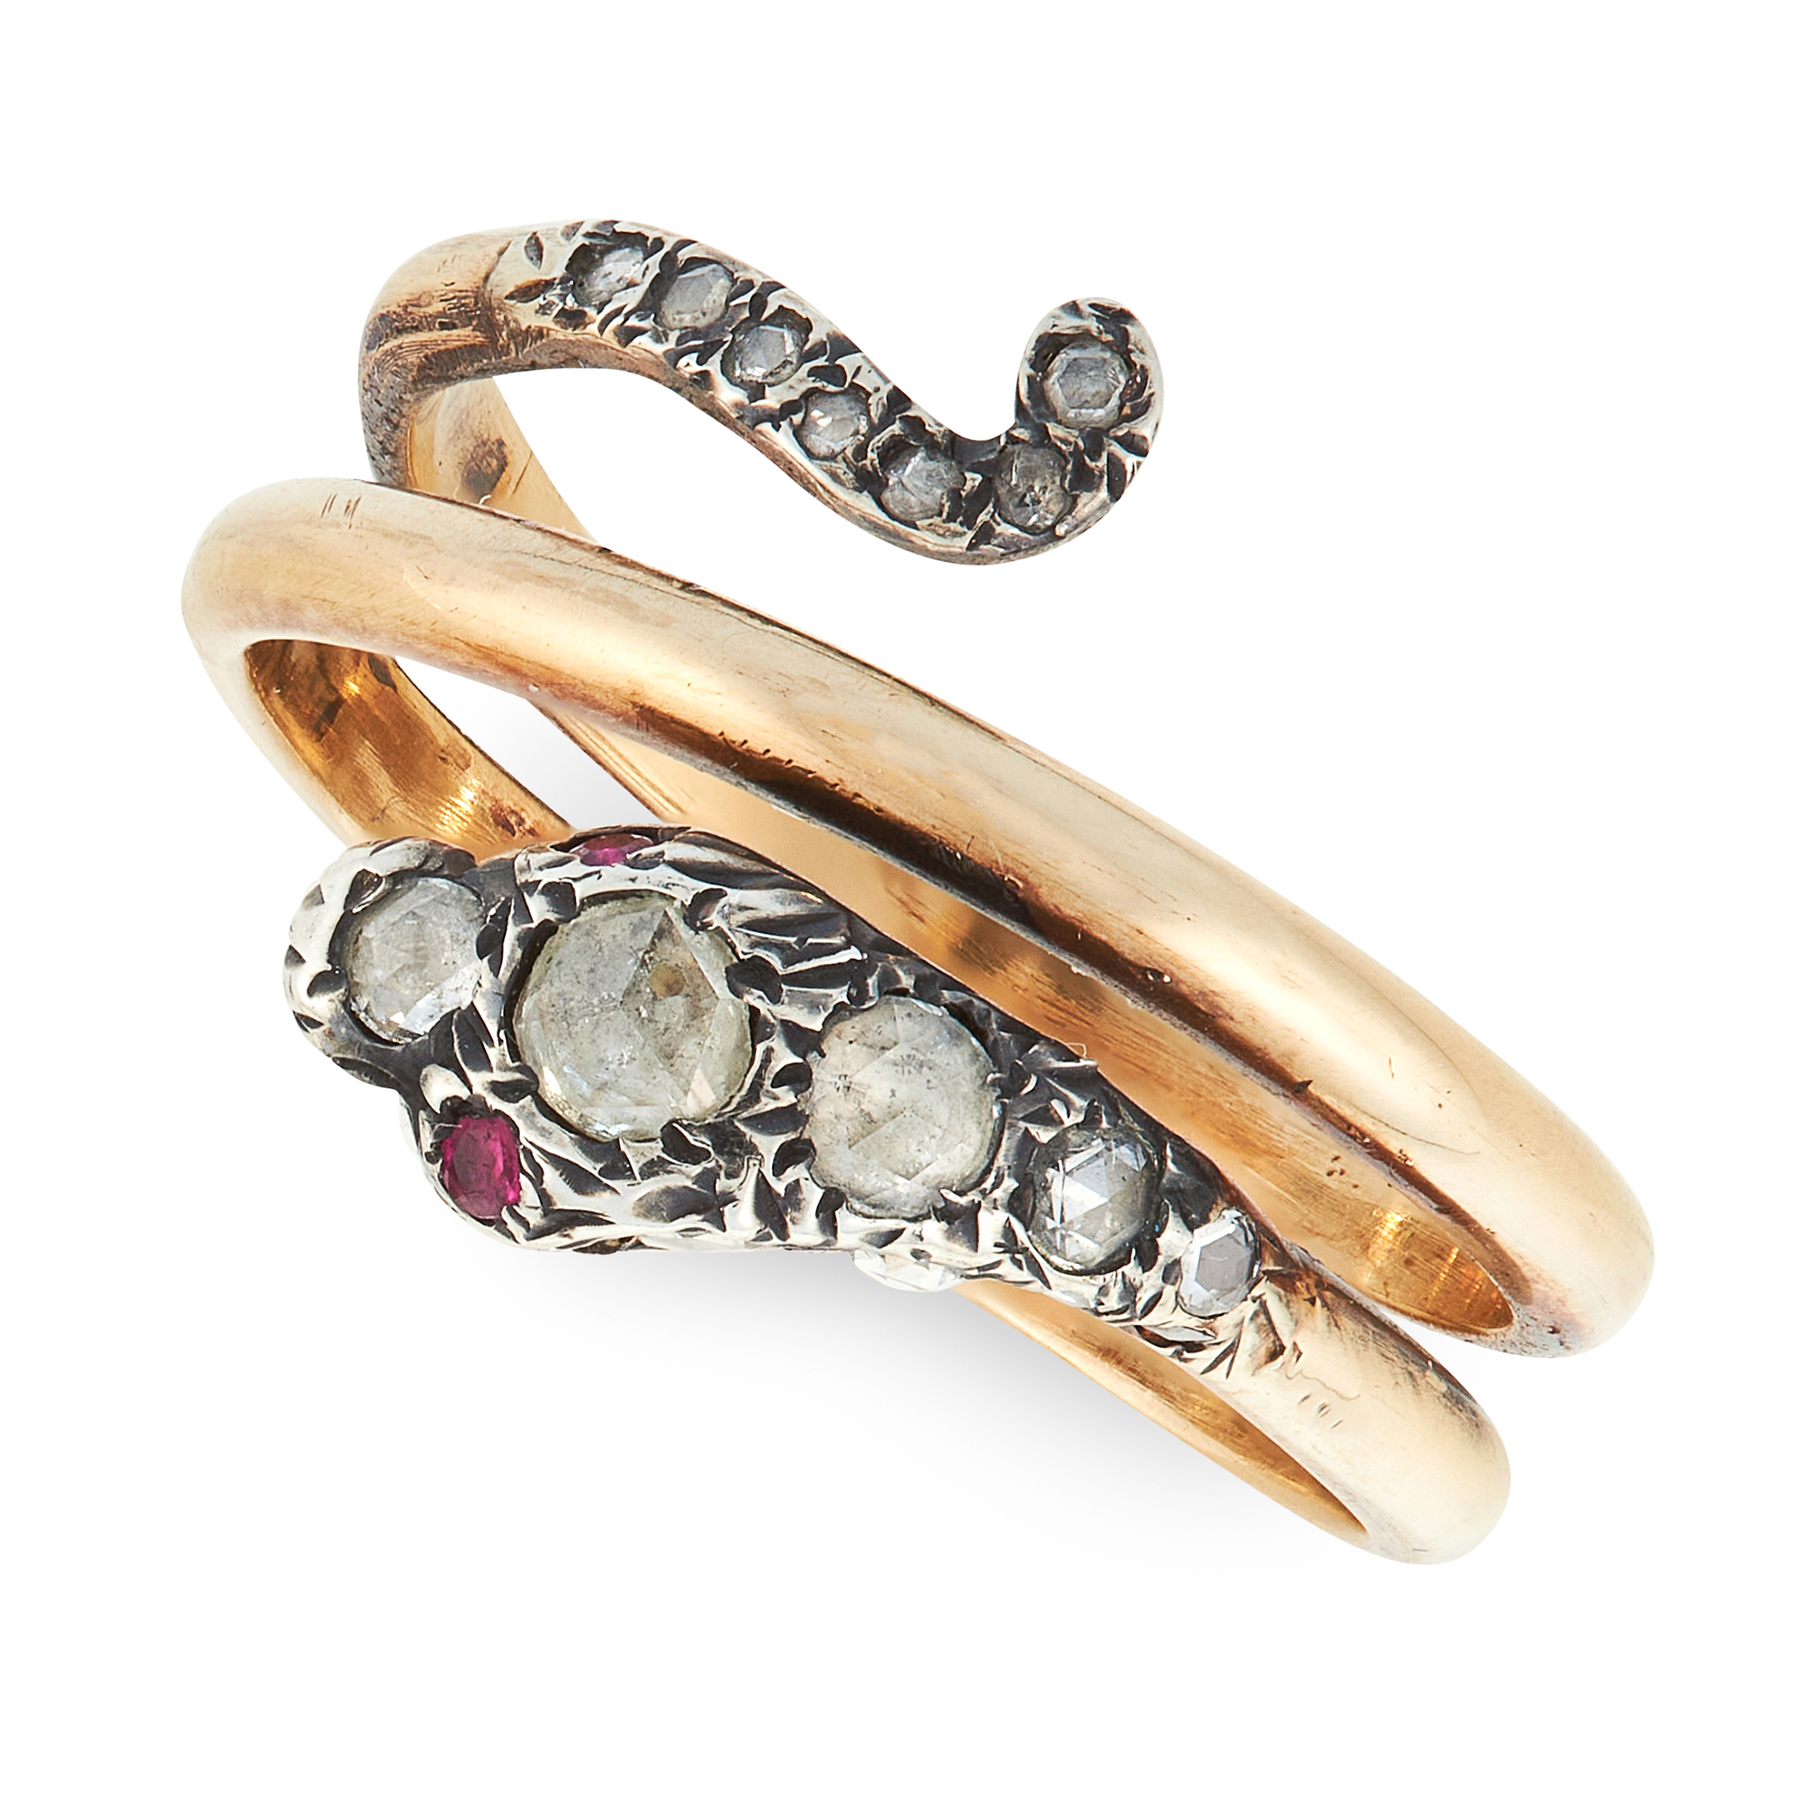 AN ANTIQUE DIAMOND AND RUBY SNAKE RING, 19TH CENTURY in yellow gold and silver, designed as a